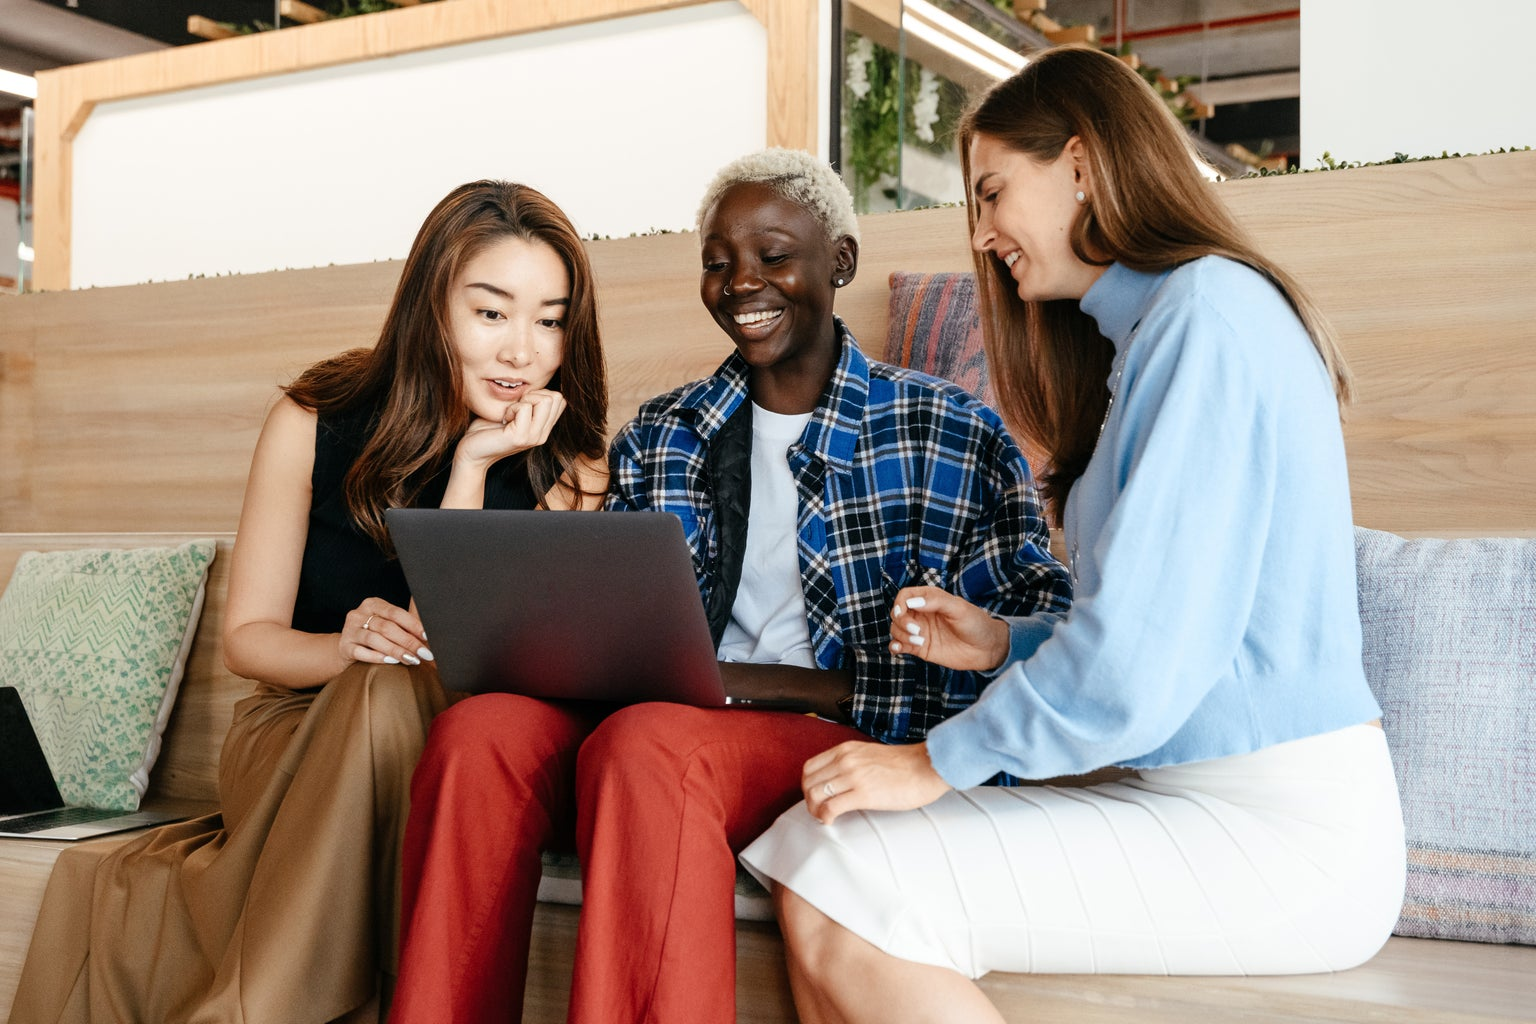 Multiracial cheerful women browsing laptop together